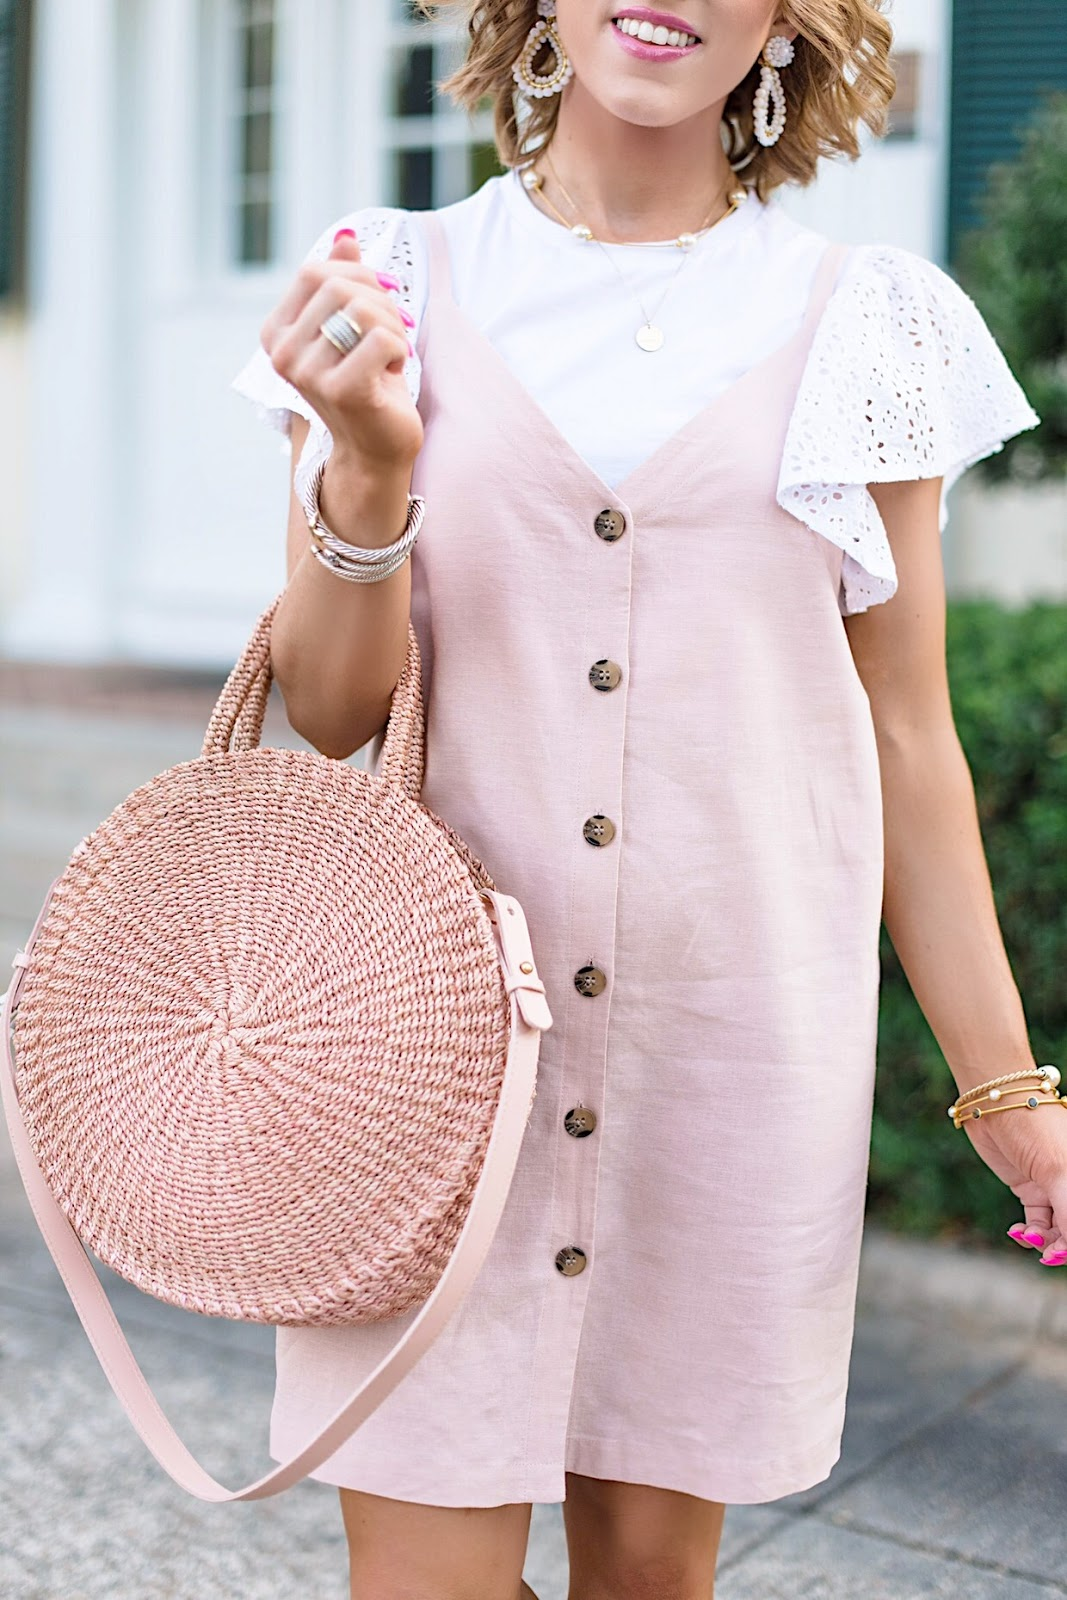 Pink and Eyelet - Something Delightful Blog